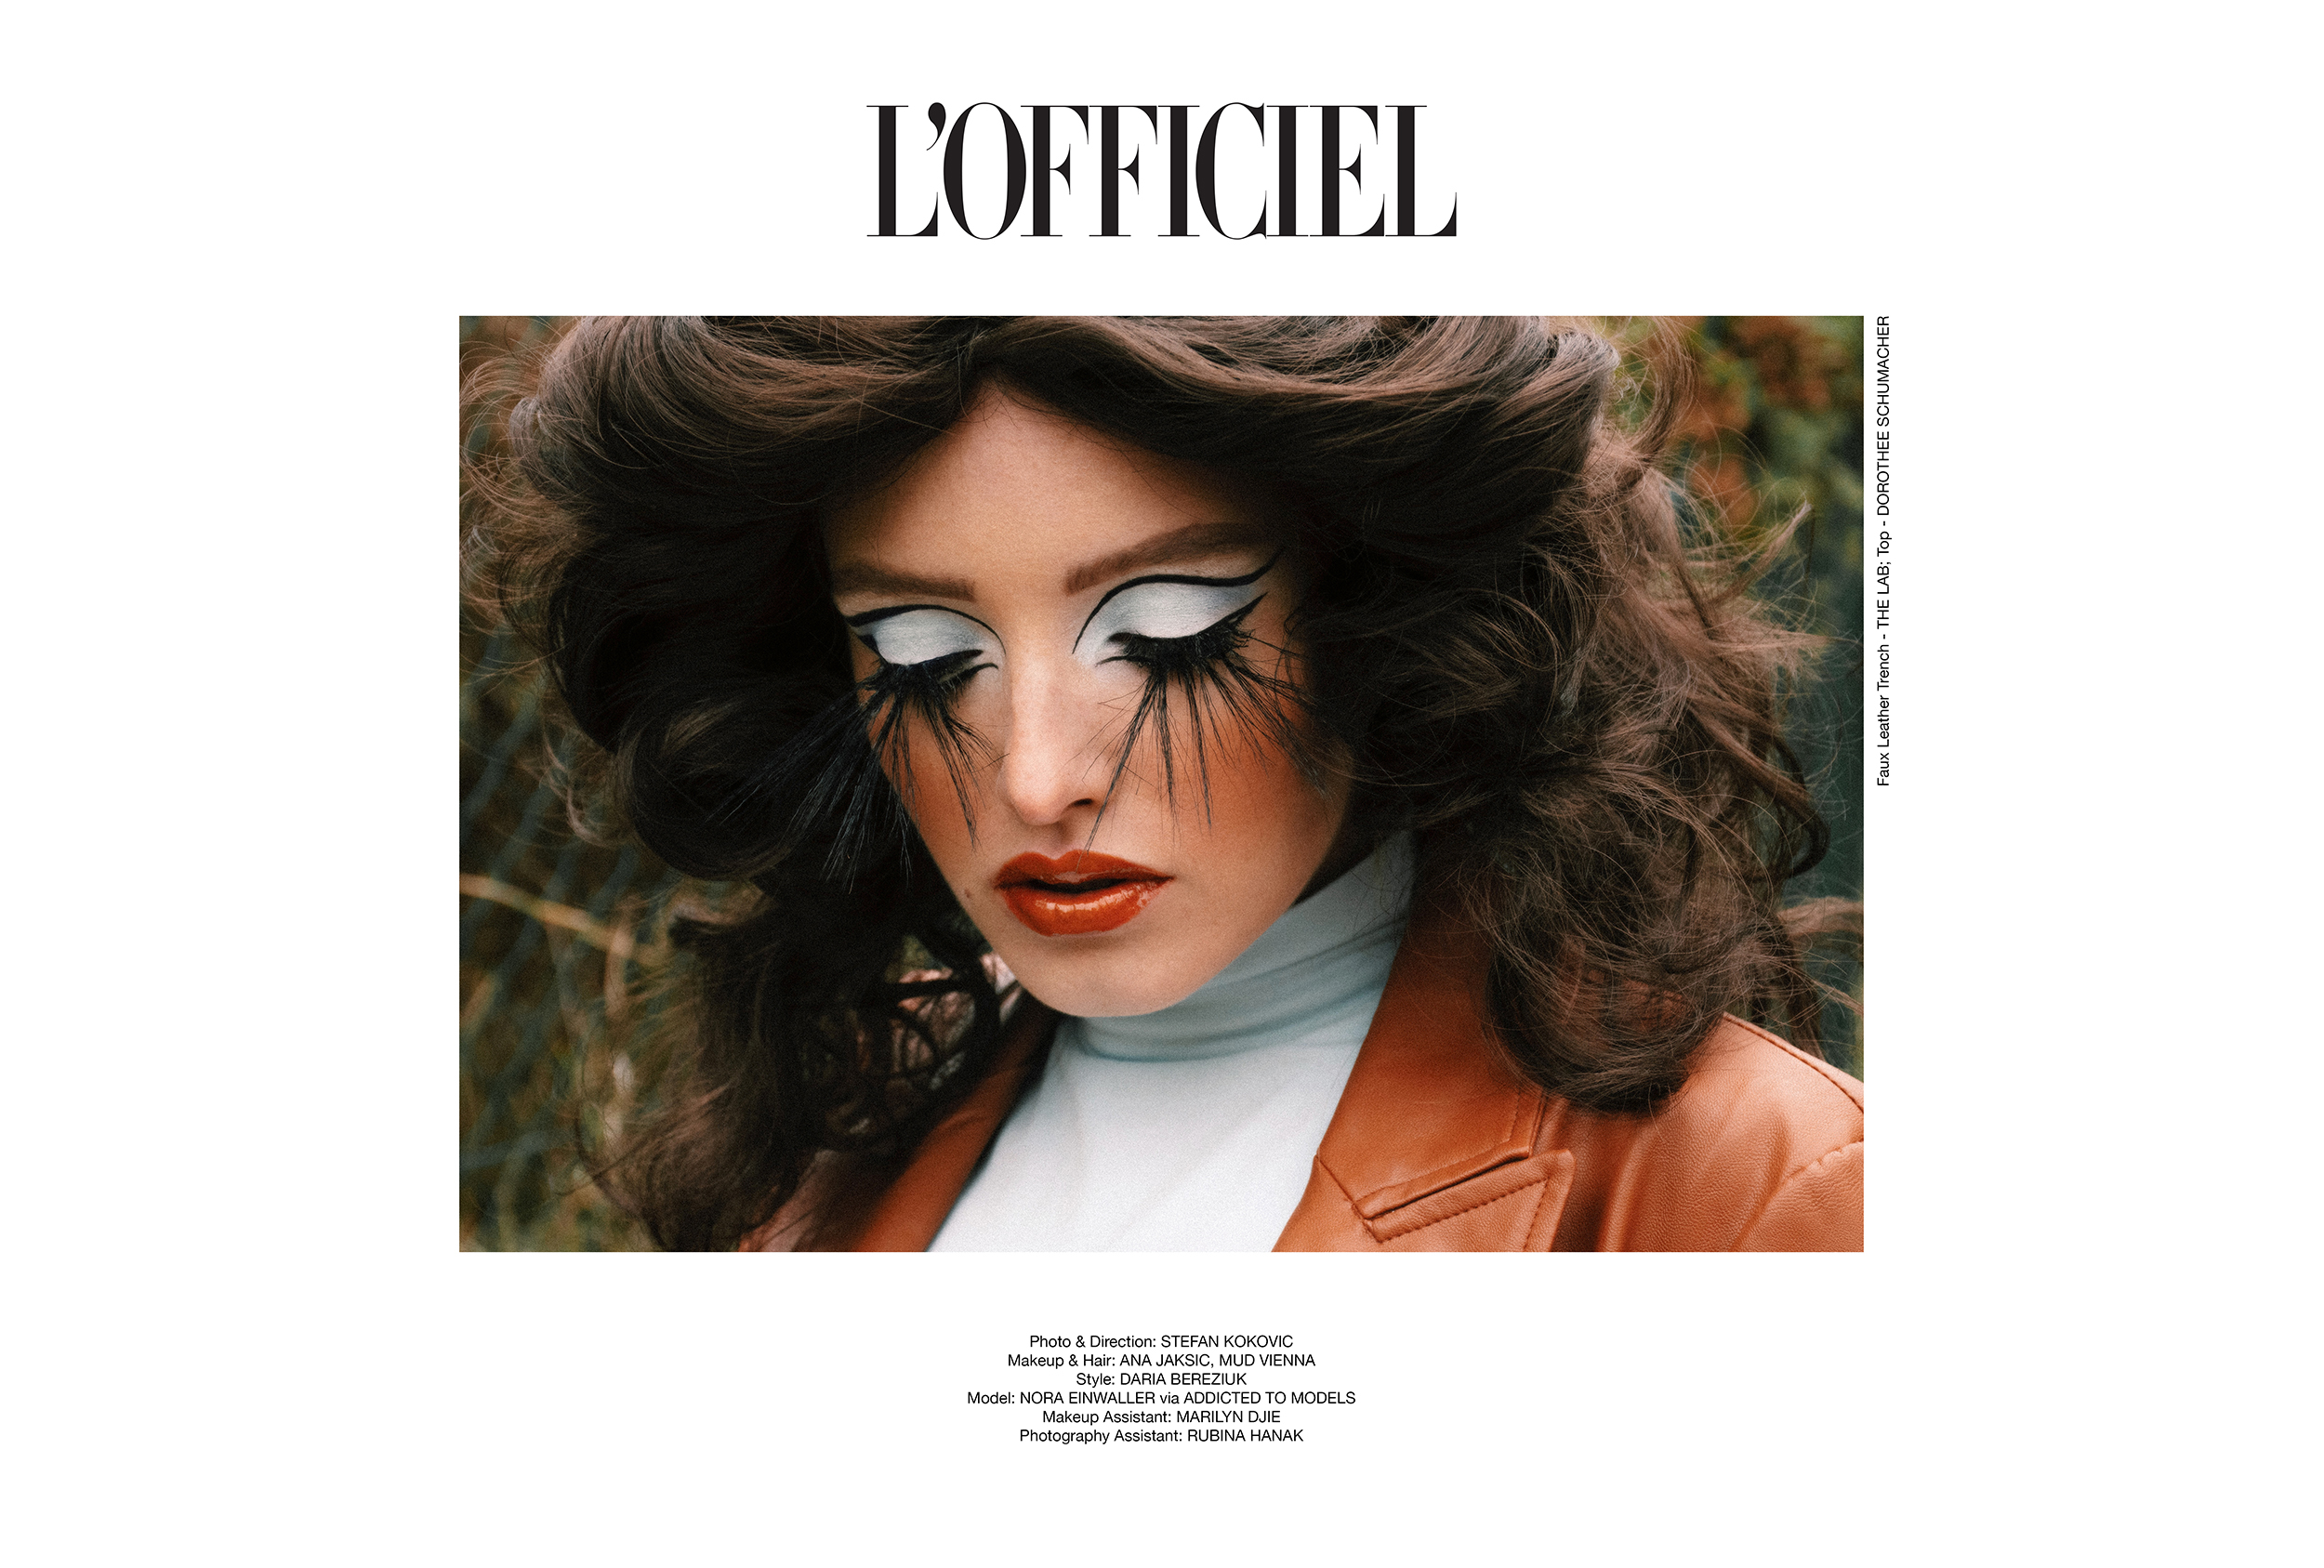 Fashion Editorial for L'Officiel Magazine stefan kokovic photographer